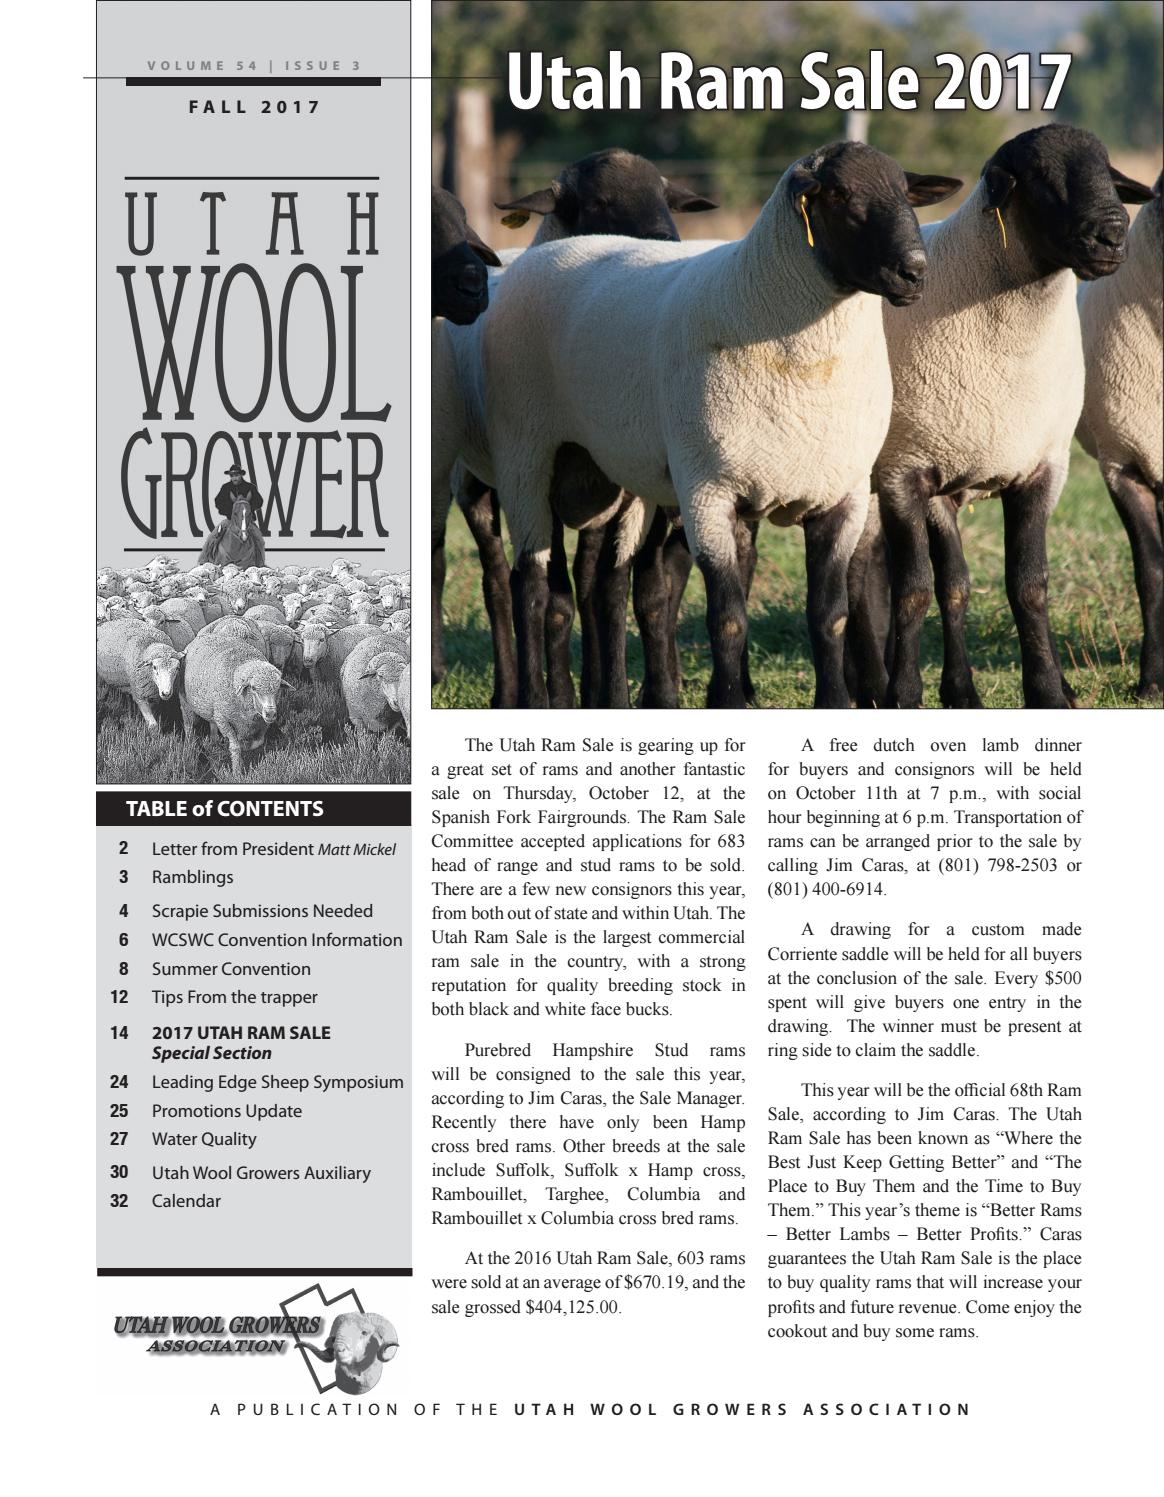 Fall 2017 newsletter by Utah Wool Growers Association - issuu